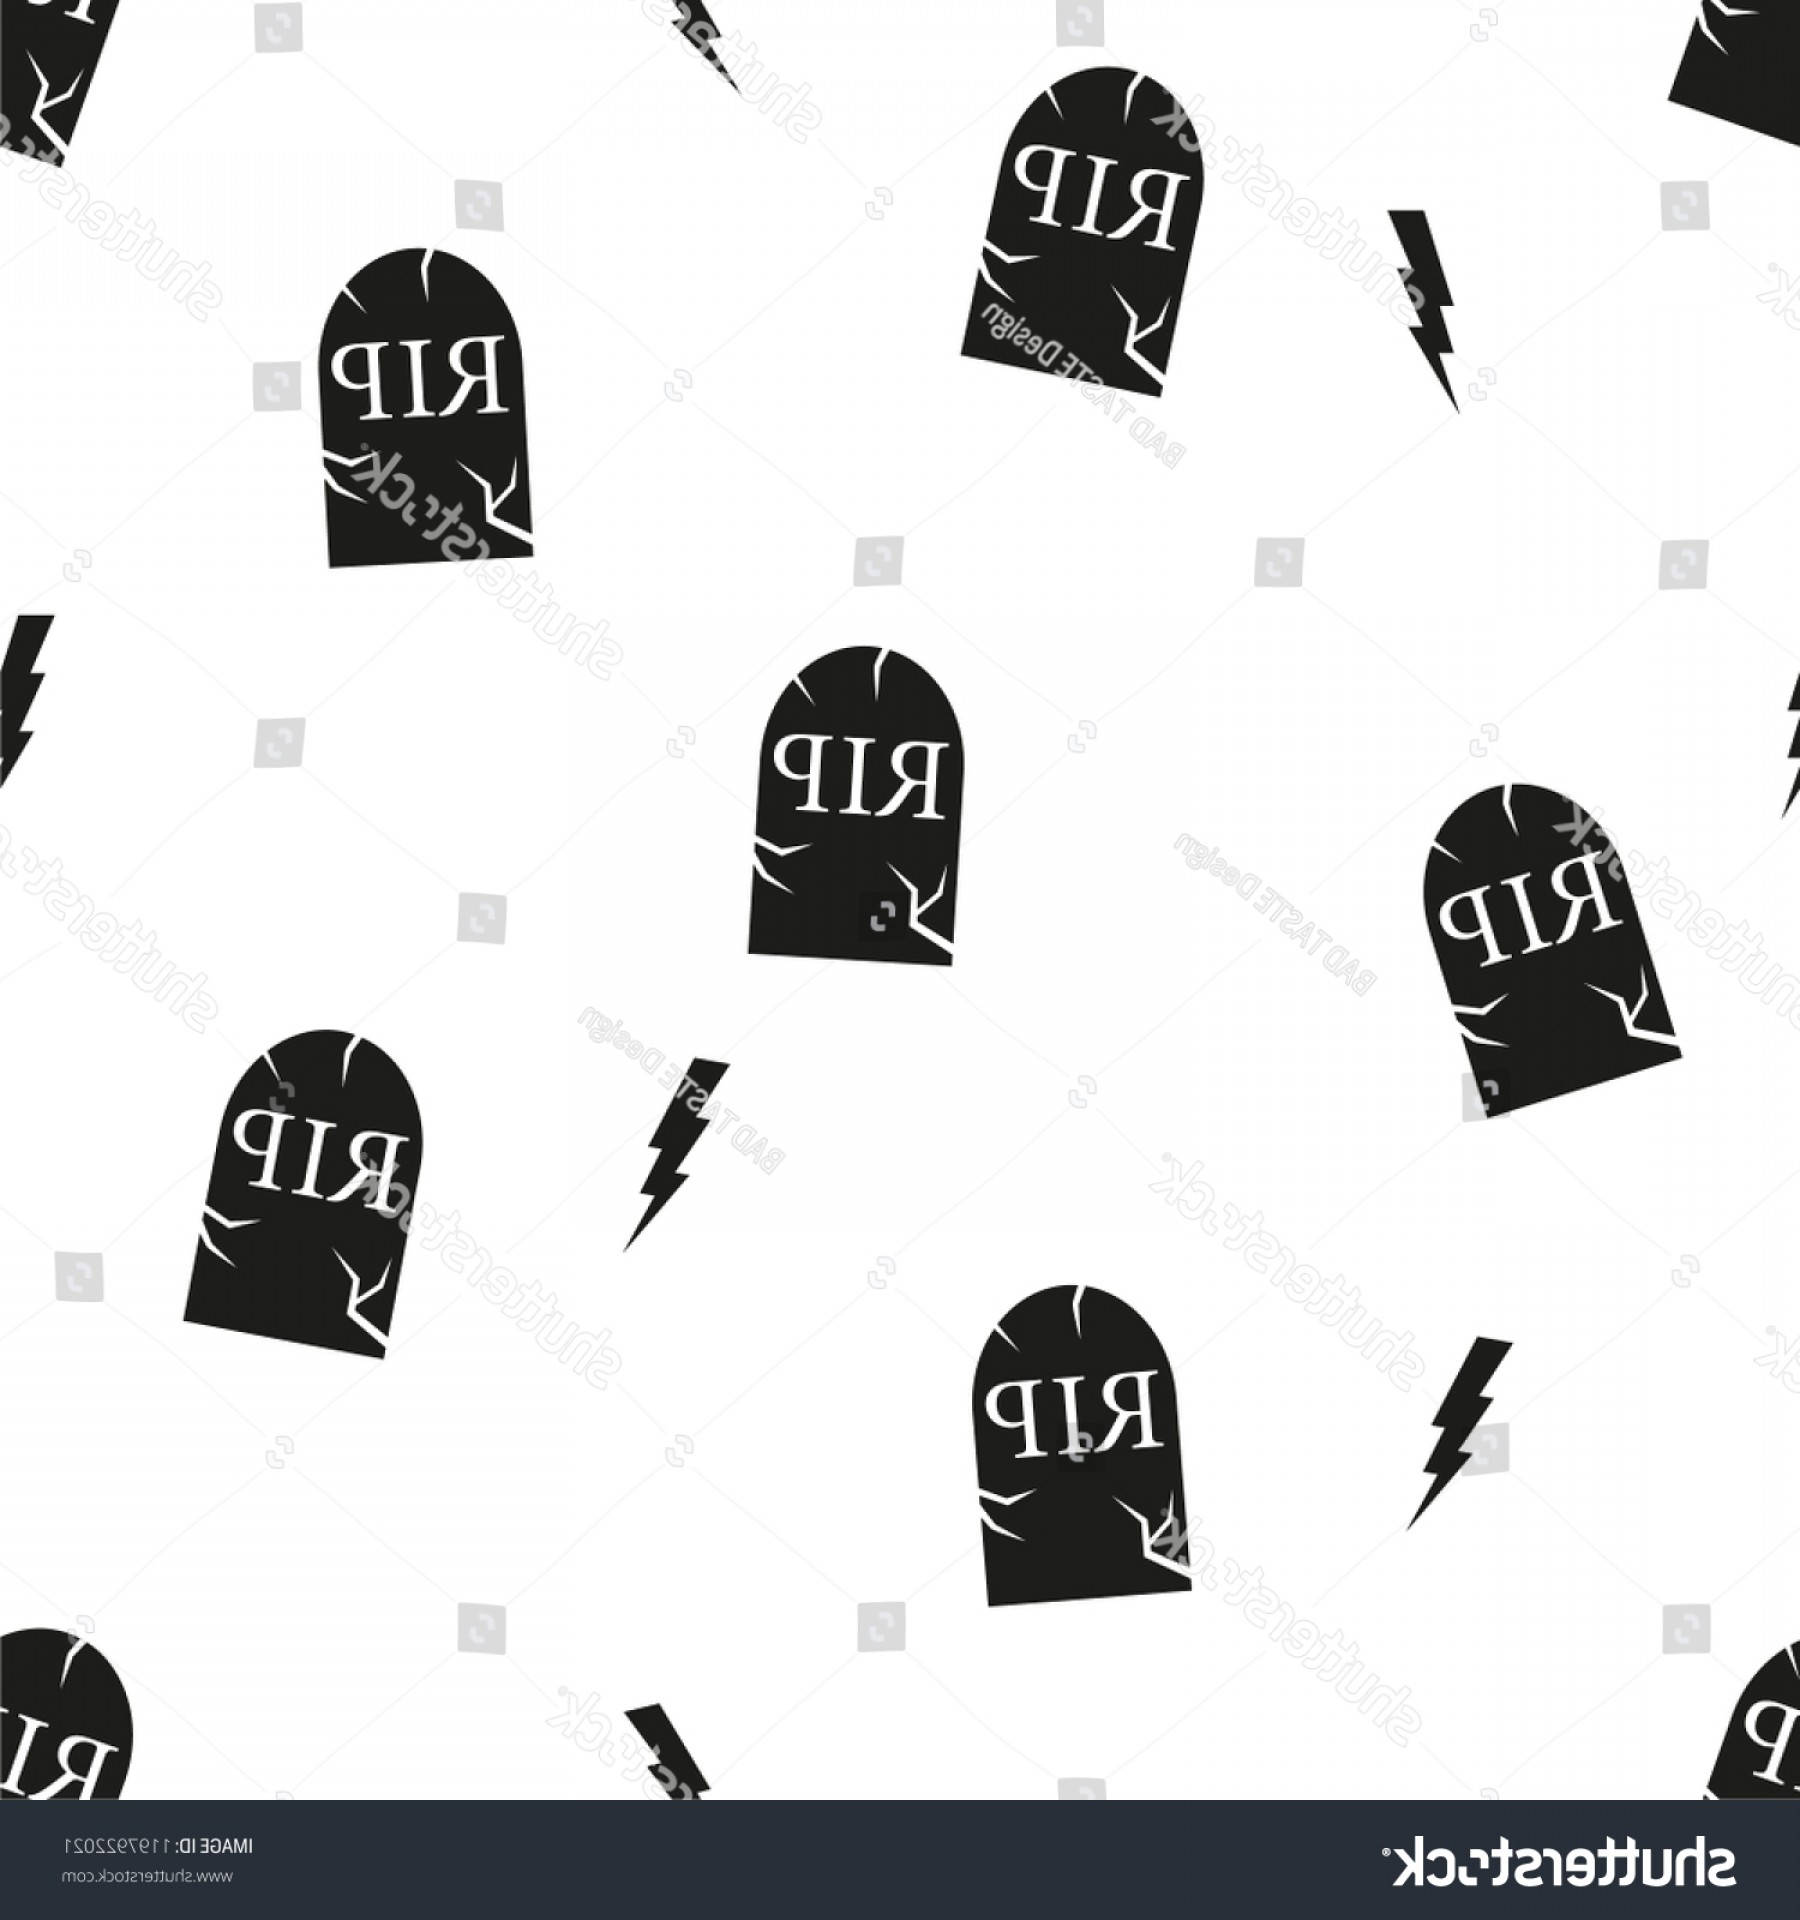 Gravestone Black And Whit Vector JPEG: Rip Black Gravestones On Transparent Background